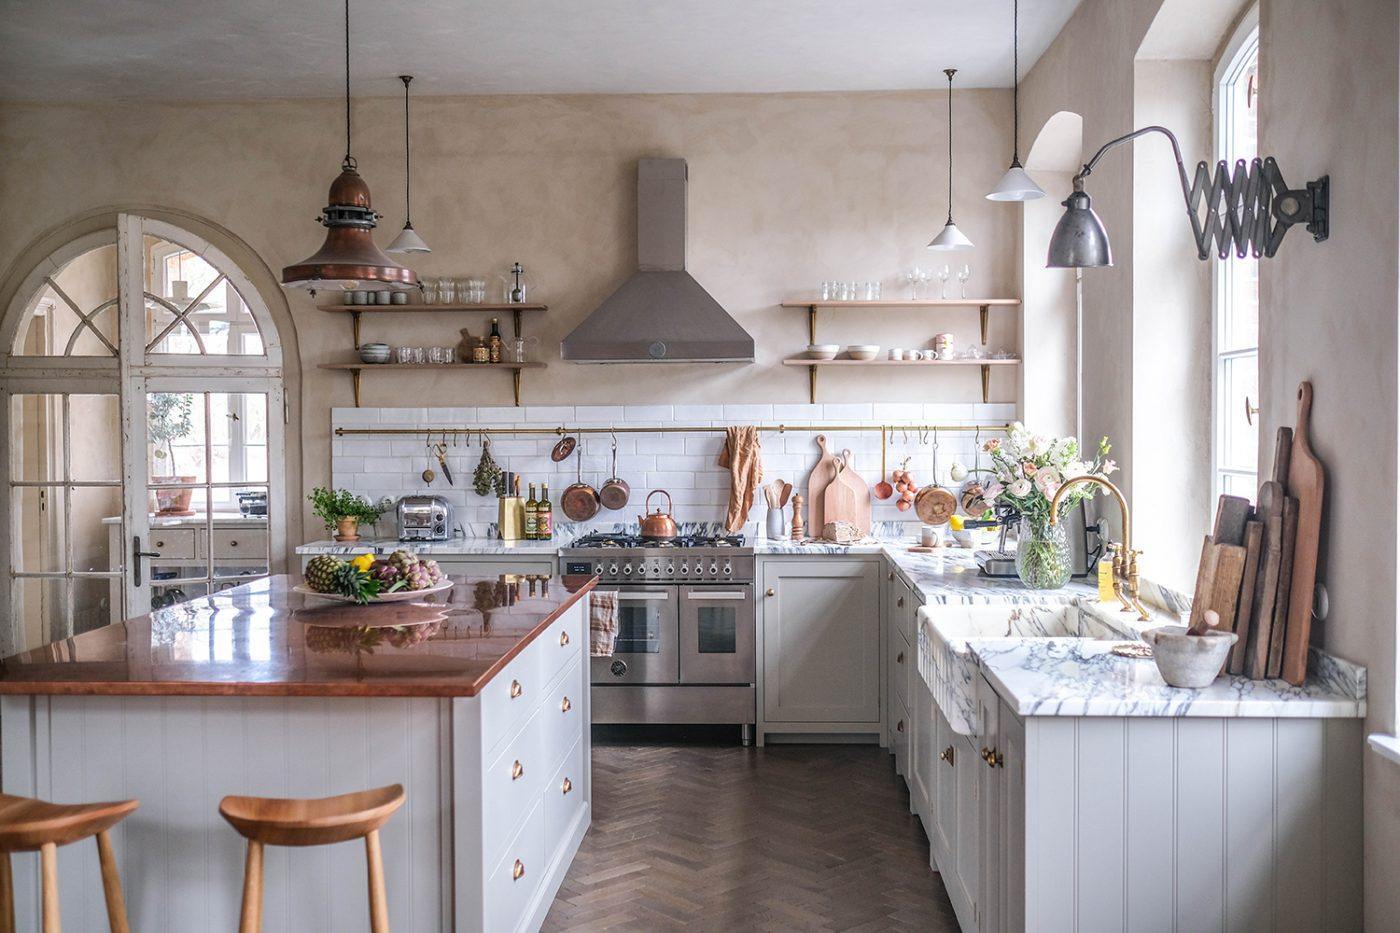 Image for Our Kitchen Renovation – Before and After